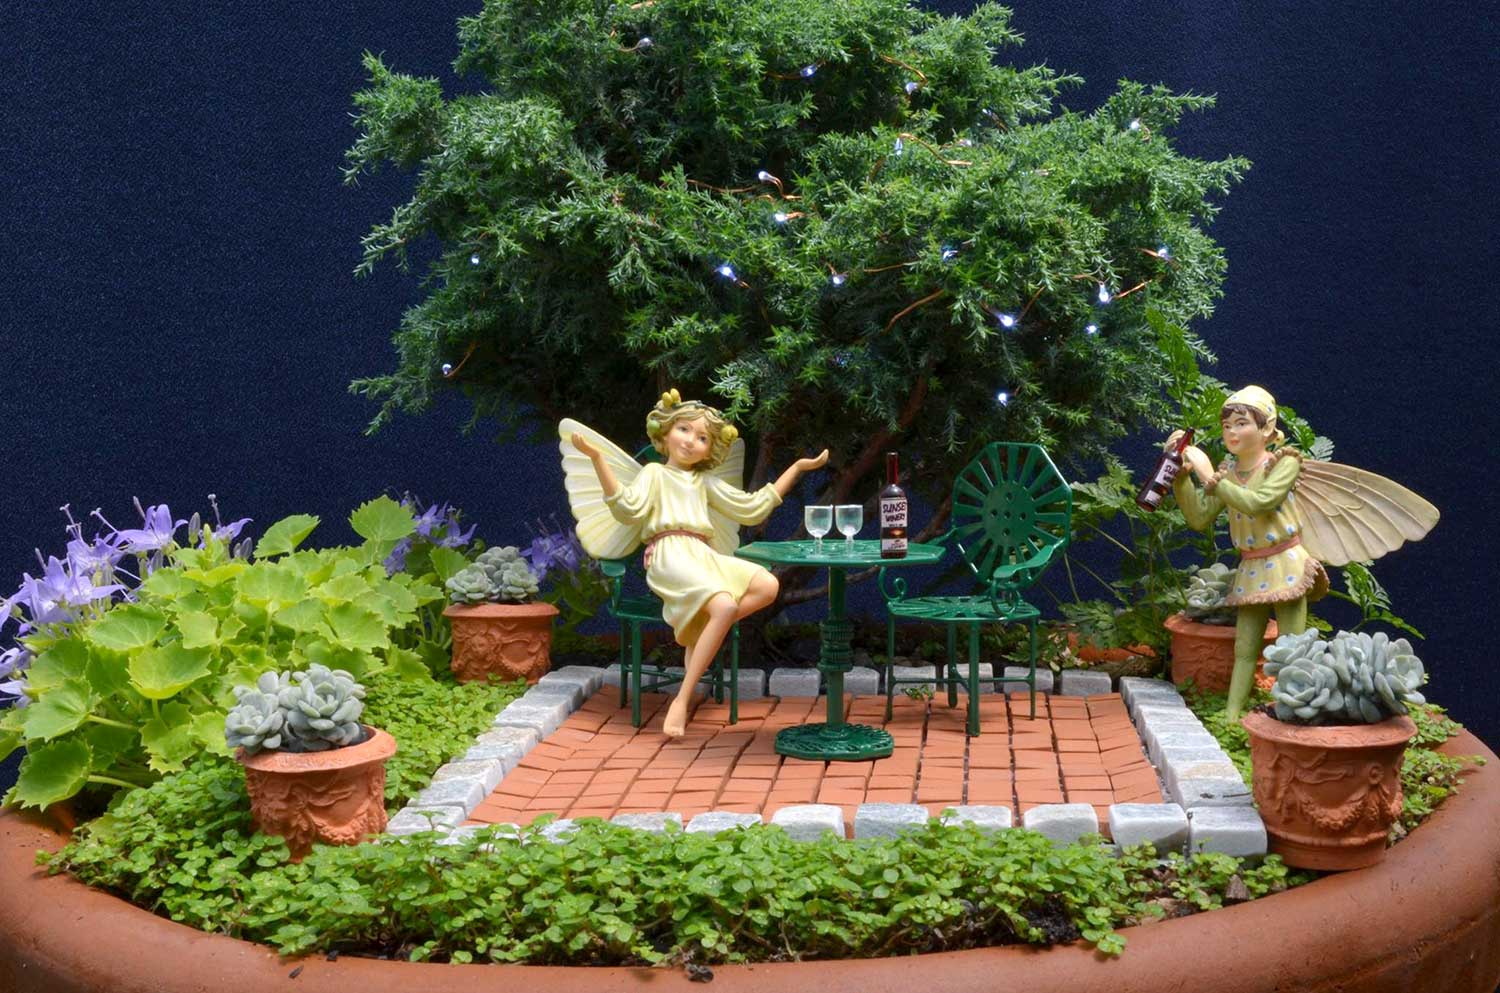 Fairy Gardens Ideas ad diy ideas how to make fairy garden Fairygardenatnight